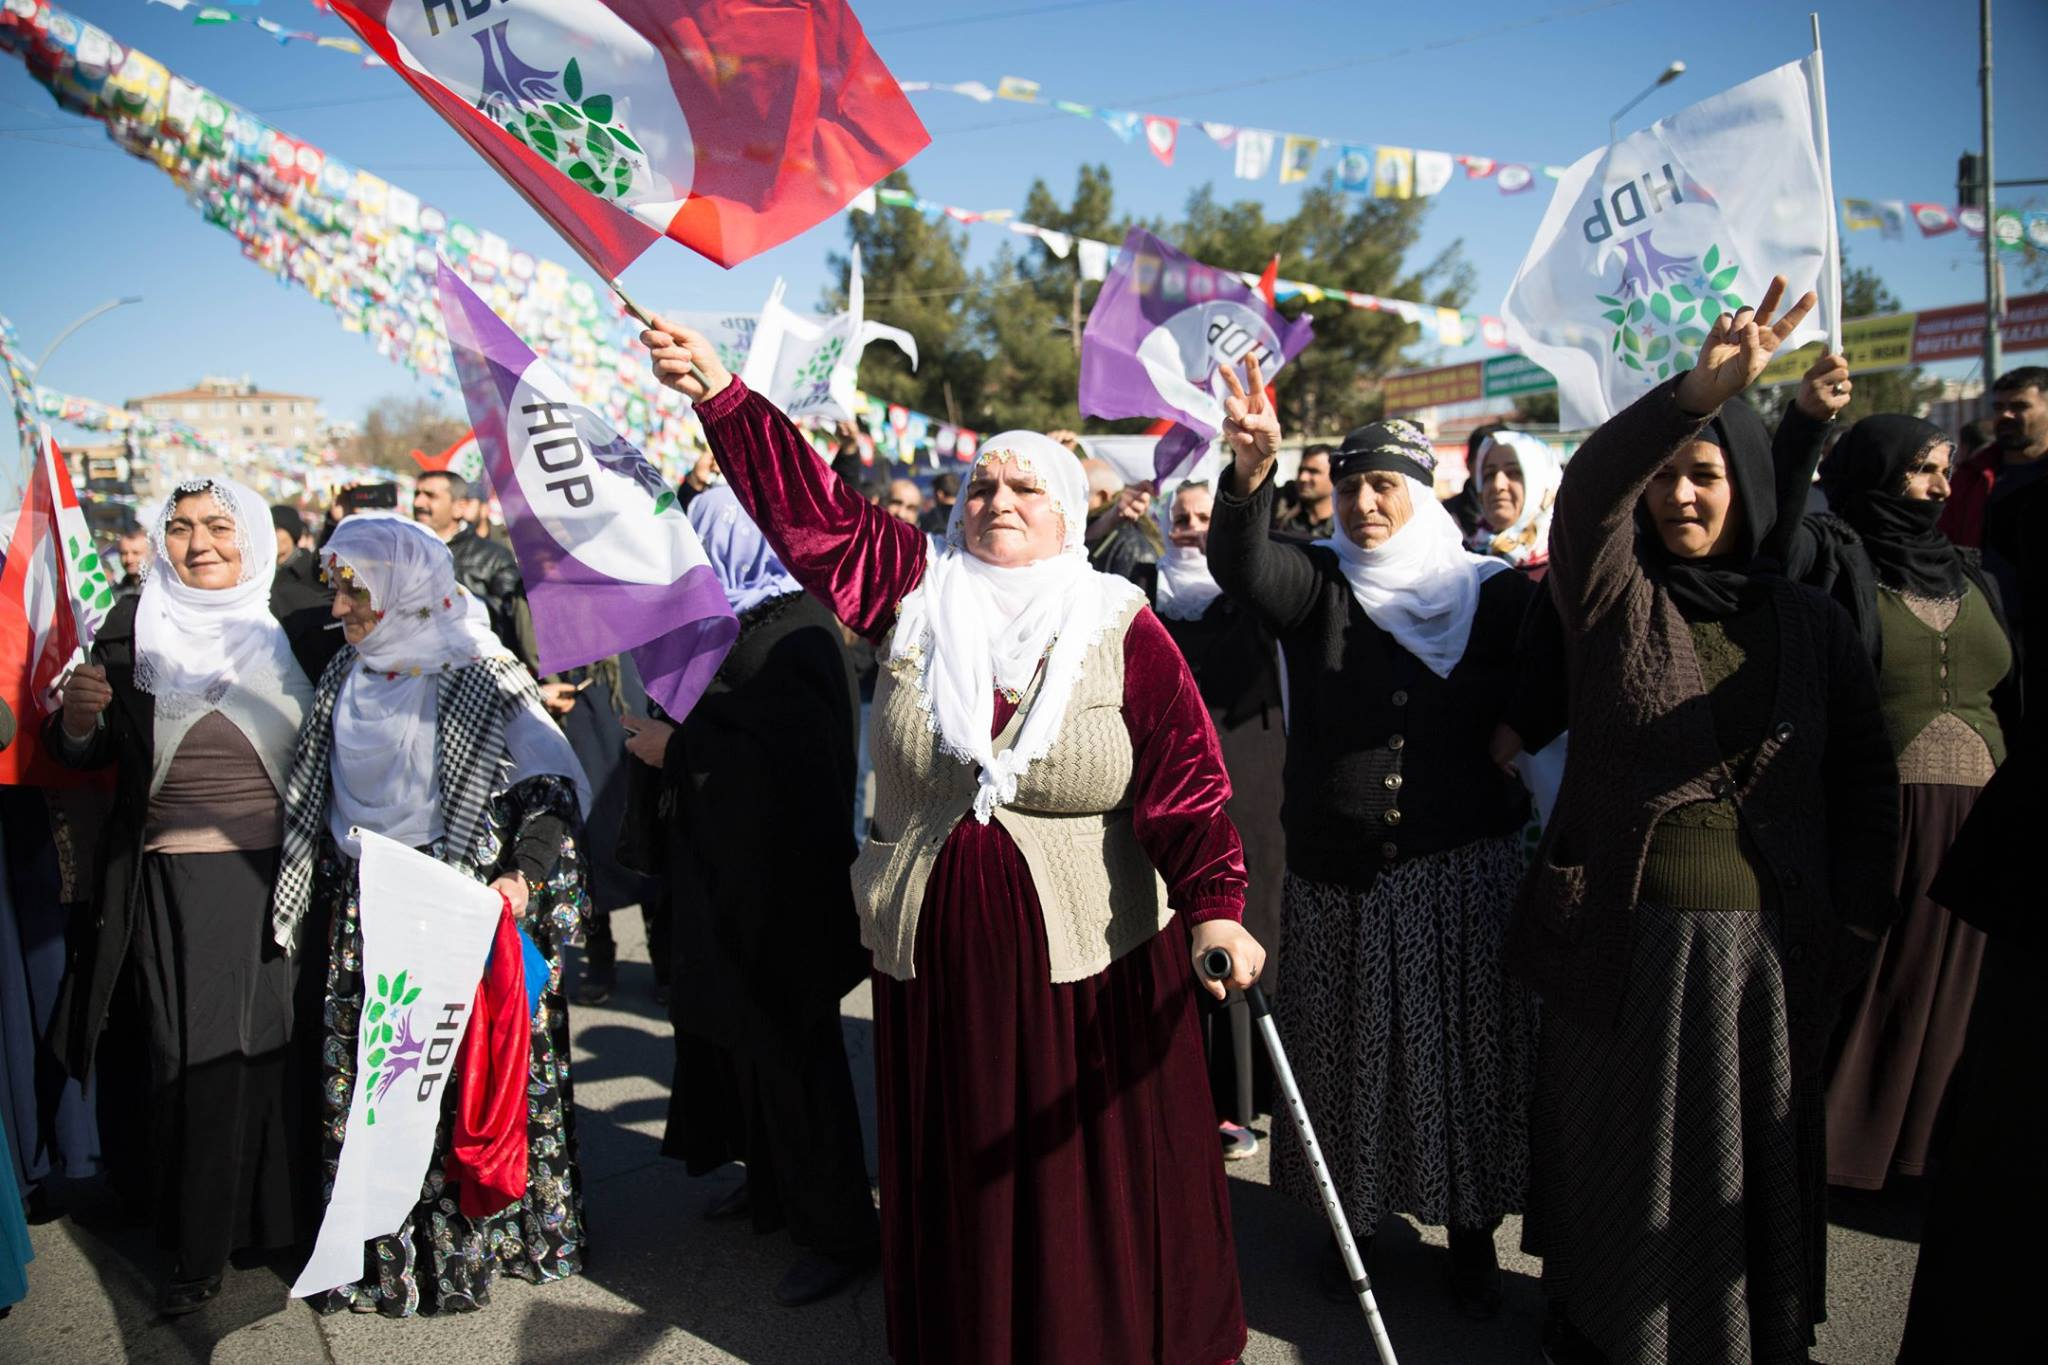 Photo: Peoples' Democratic Party - HDP / Facebook